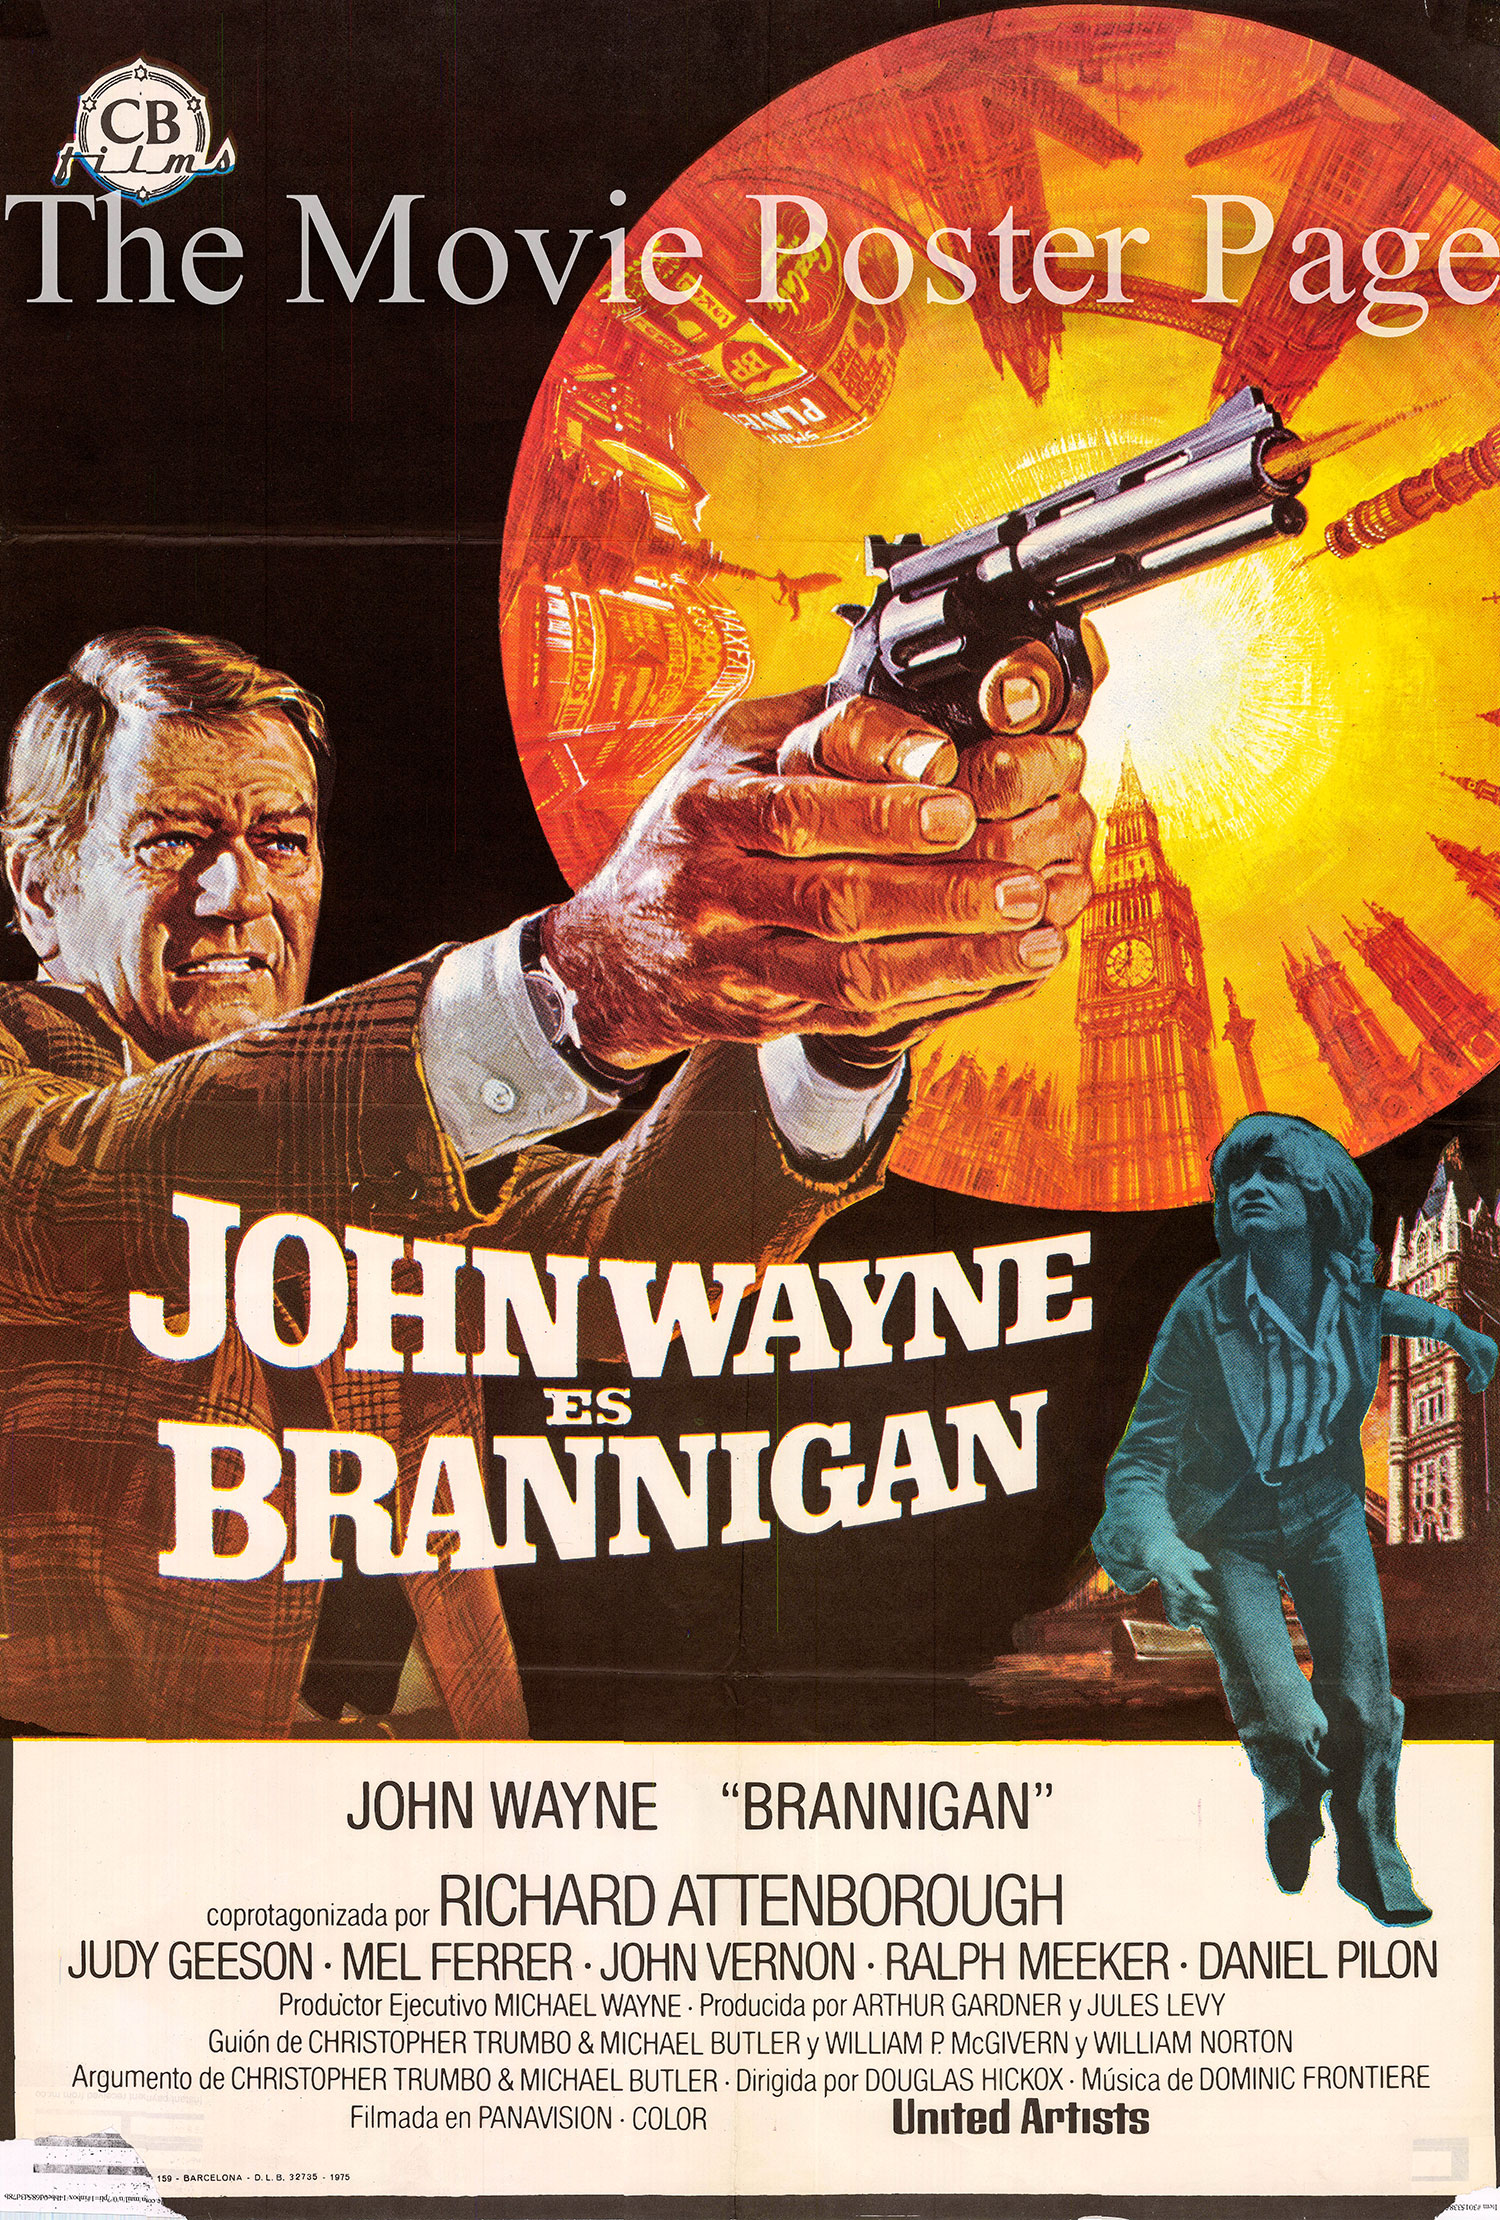 Pictured is a Spanish one-sheet poster for the 1975 Douglas Hickox film Brannigan starring John Wayne.